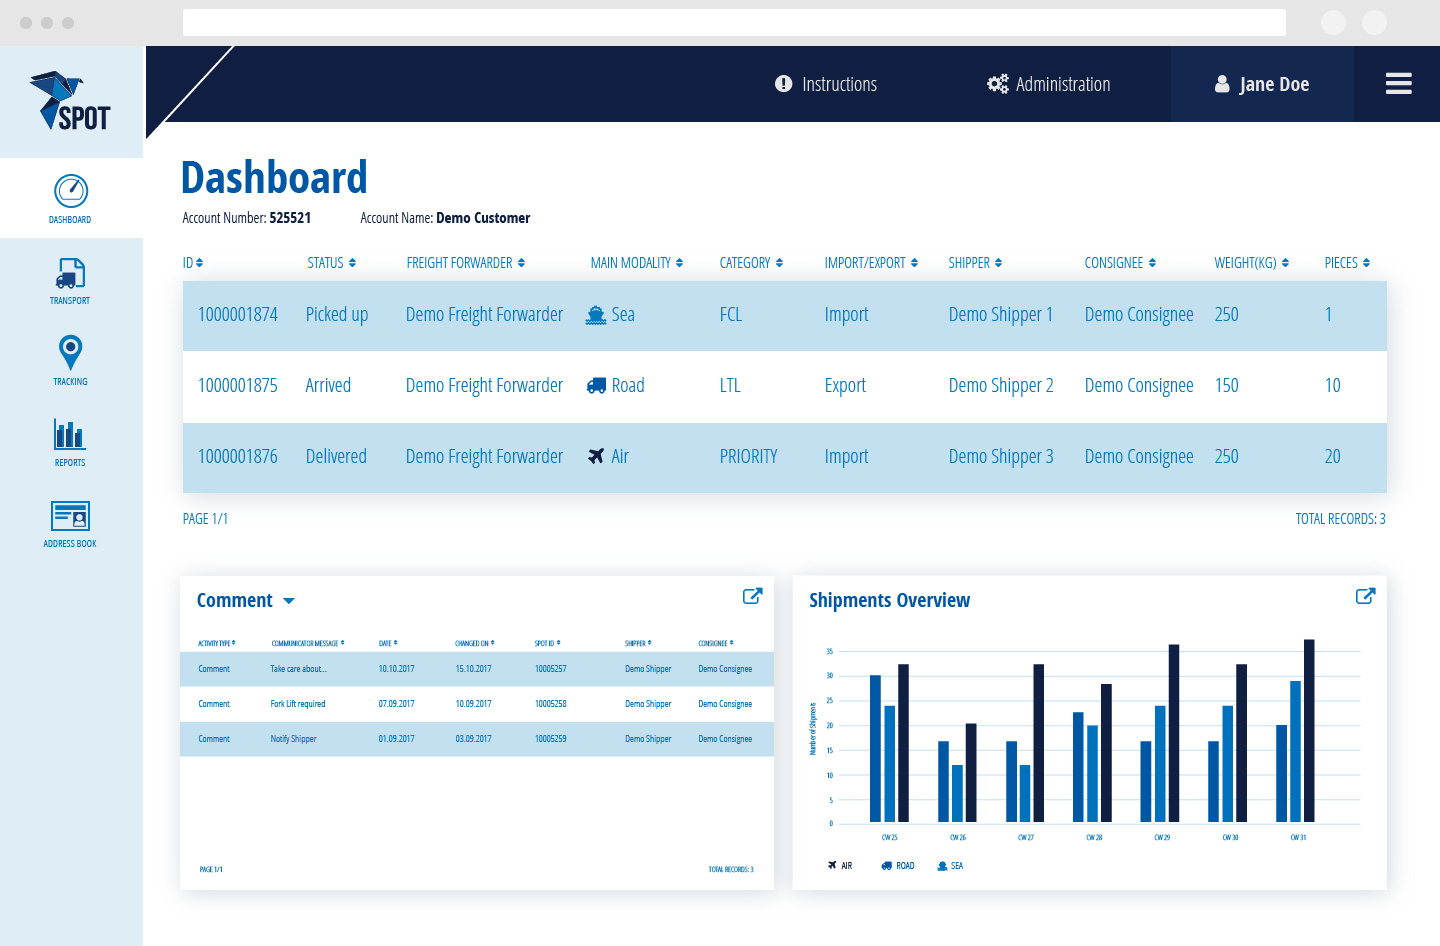 SPOT Transport Mgmt Dashboard